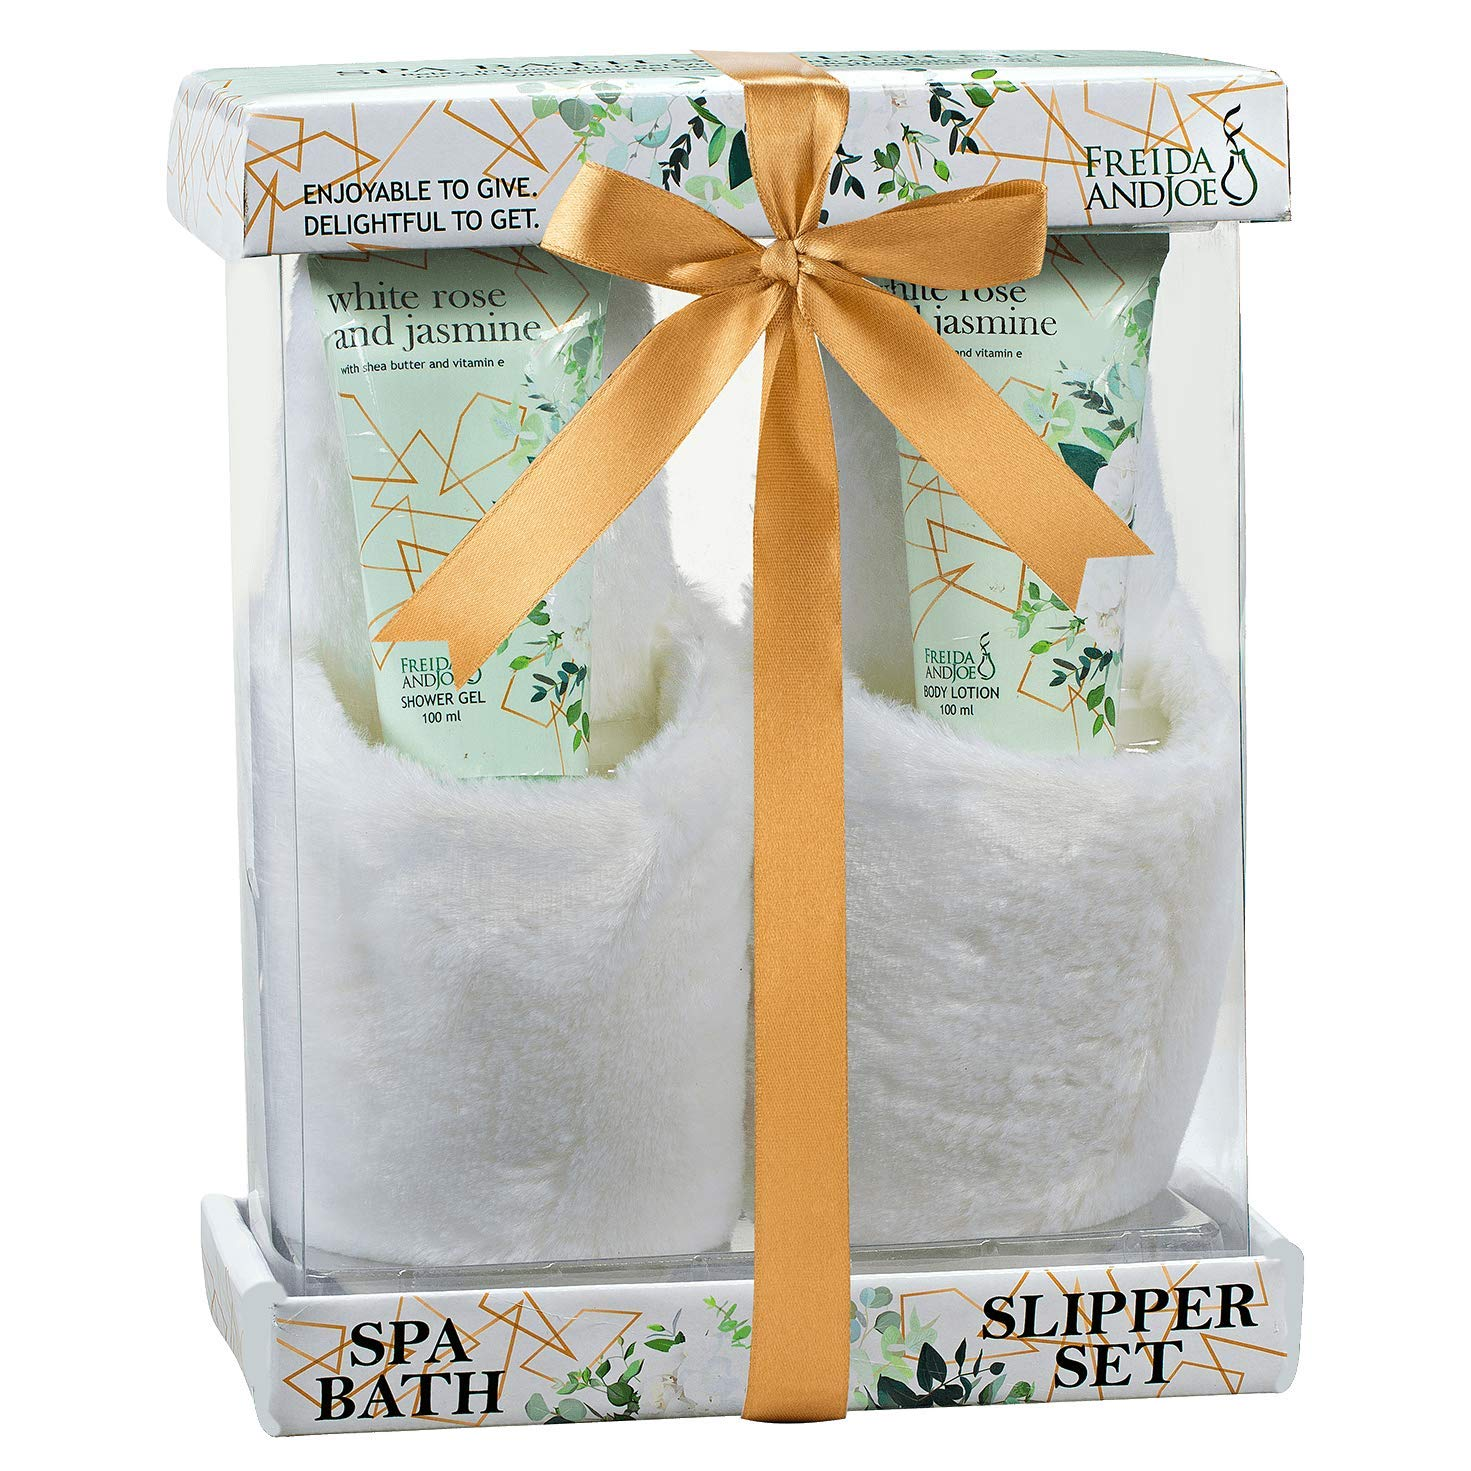 Home Spa Slippers Set Bath Gift Basket - White Rose Jasmine Fragrance - Luxury Bath & Body Set For Women - Contains Body Lotion and Shower Gel, Plush Cozy Close Toe Slippers Perfect for Holiday